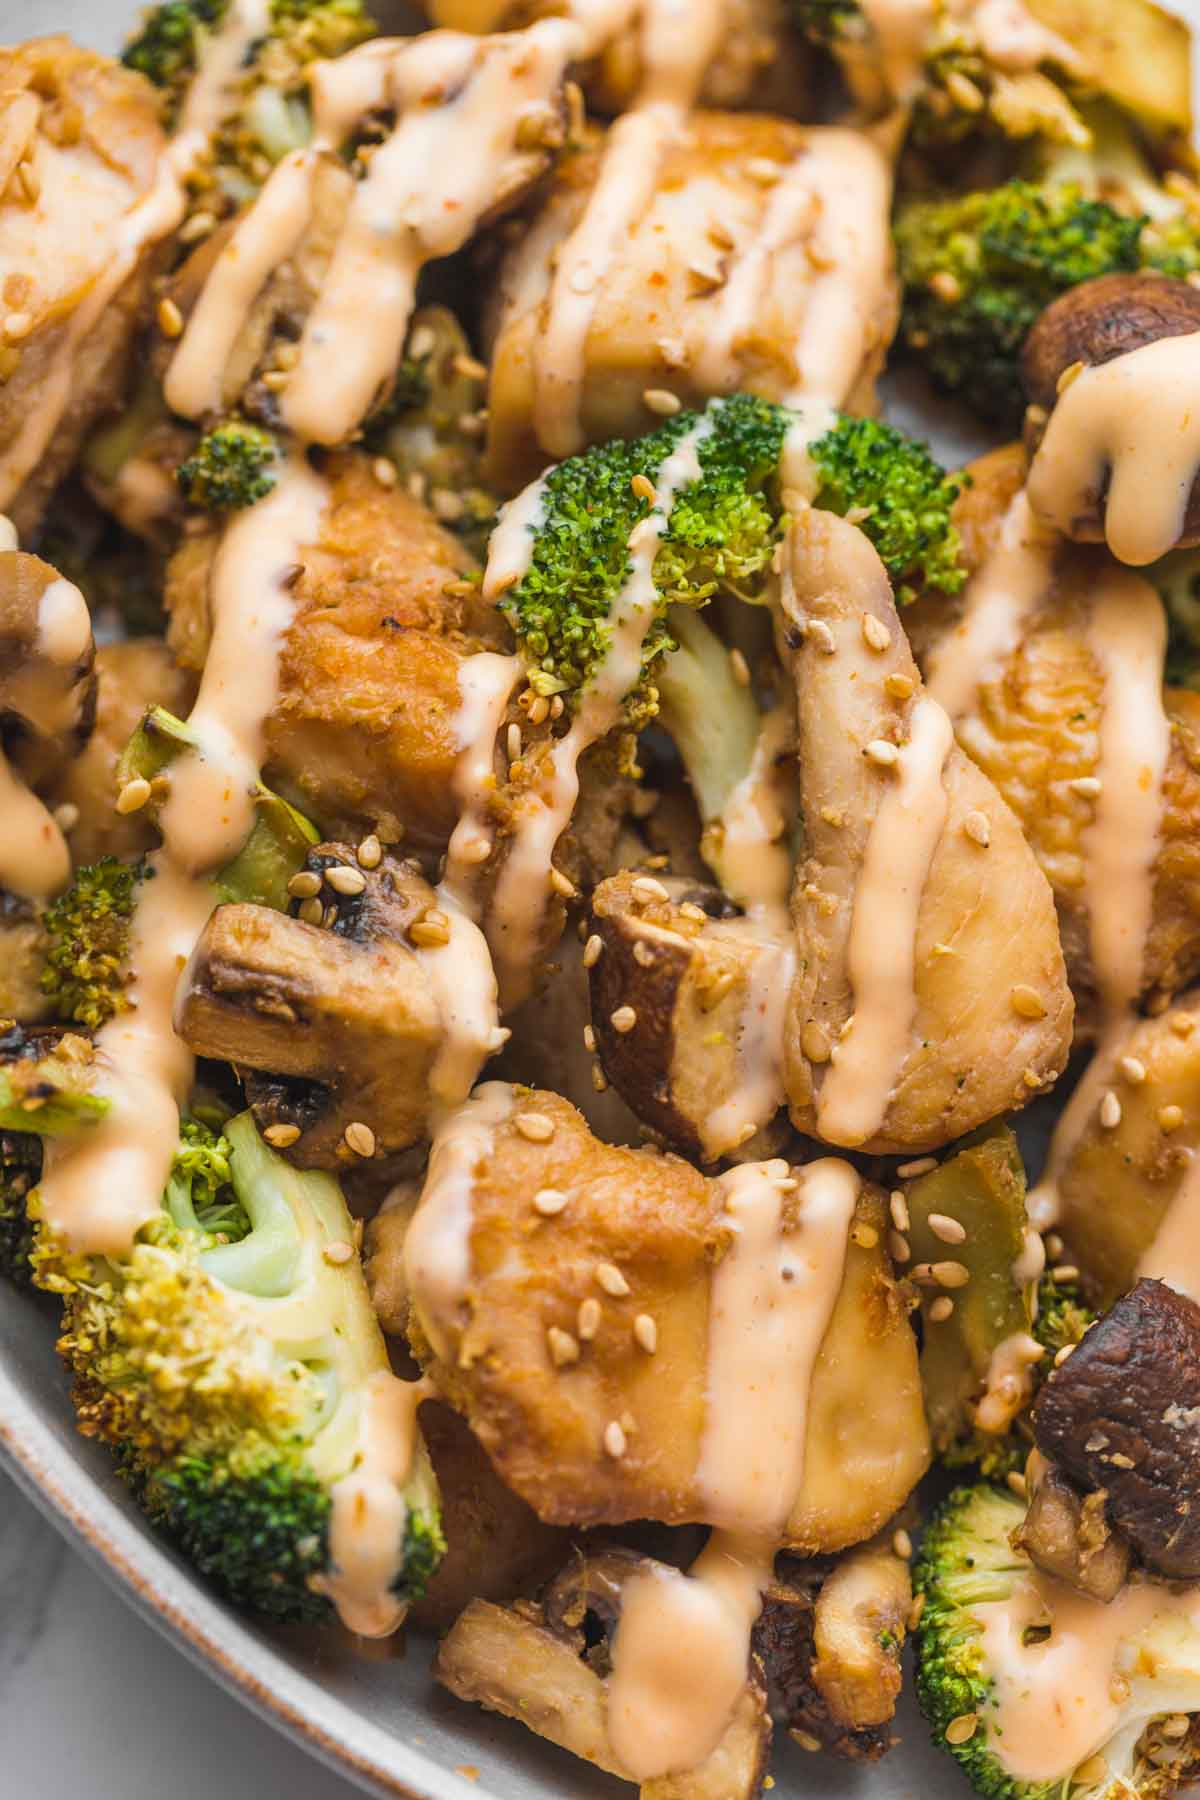 Chicken and broccoli drizzled with creamy chili mayo sauce